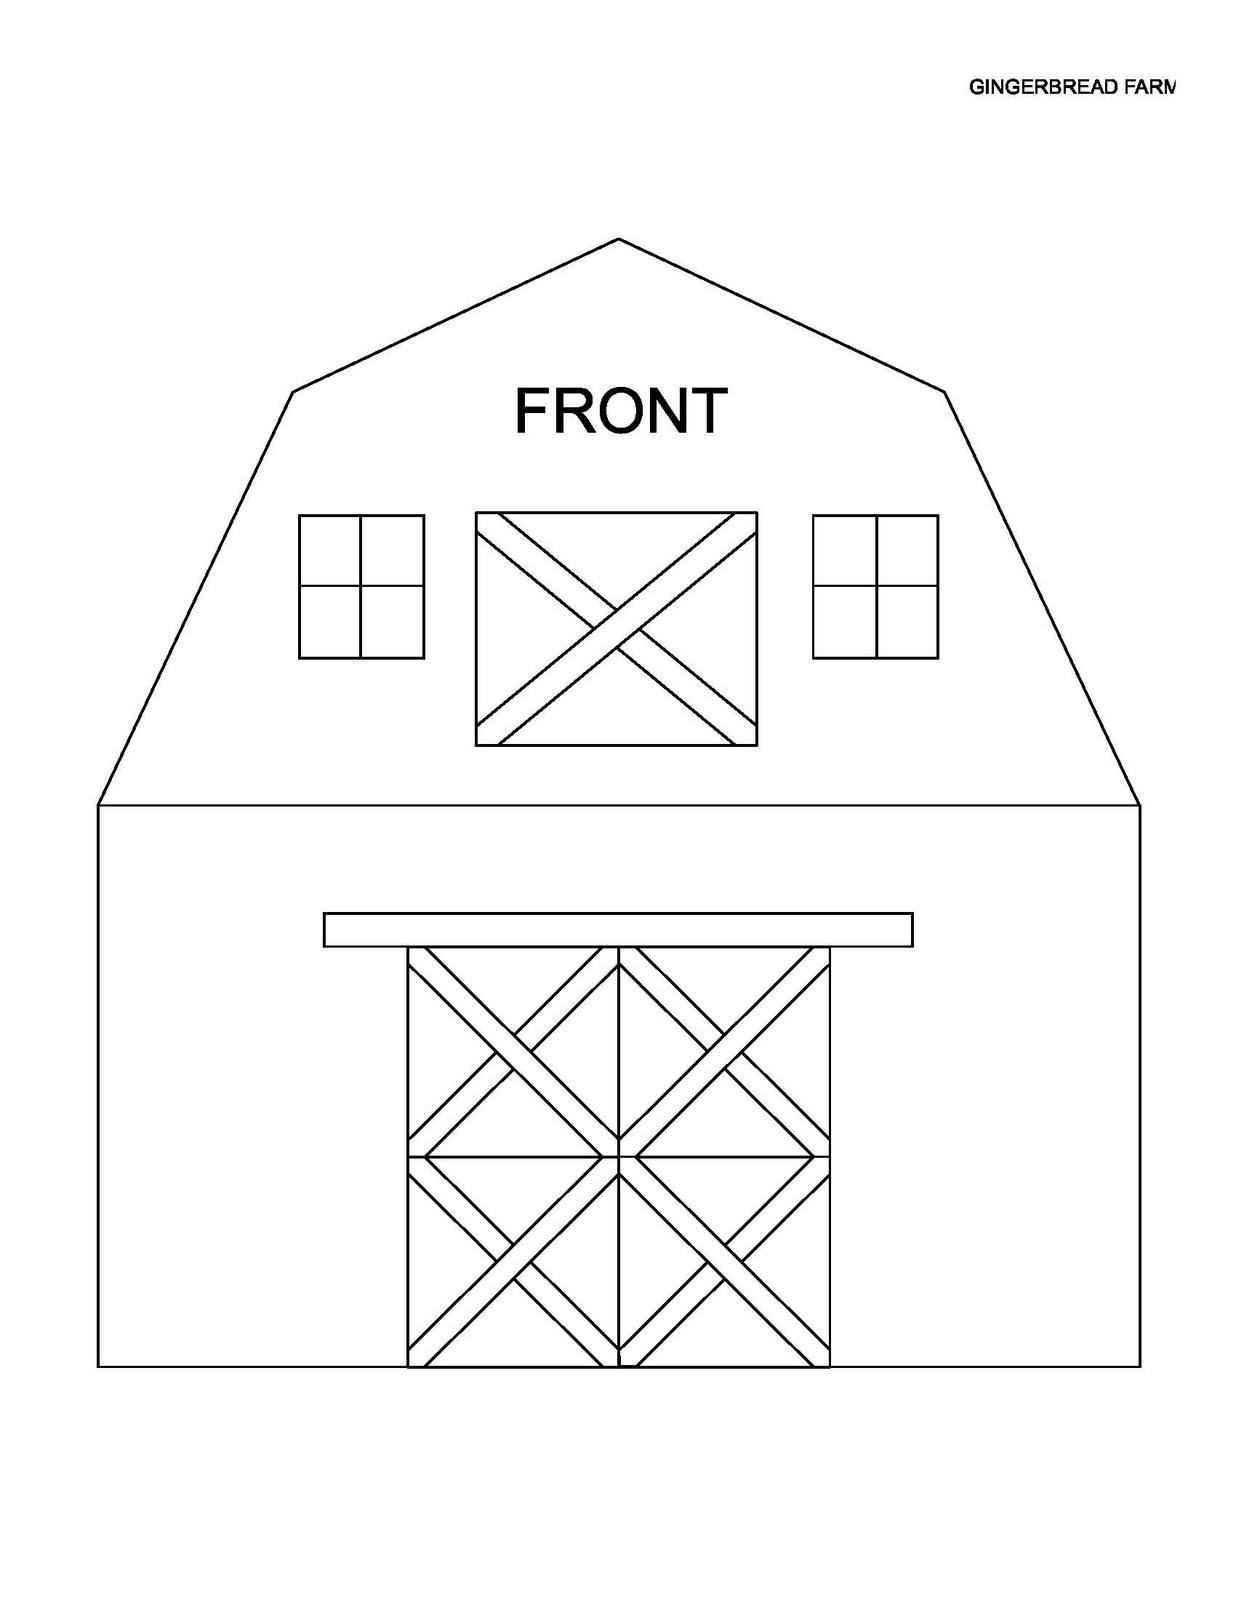 A city chicken farm let 39 s have a ginger barn raising for House patterns